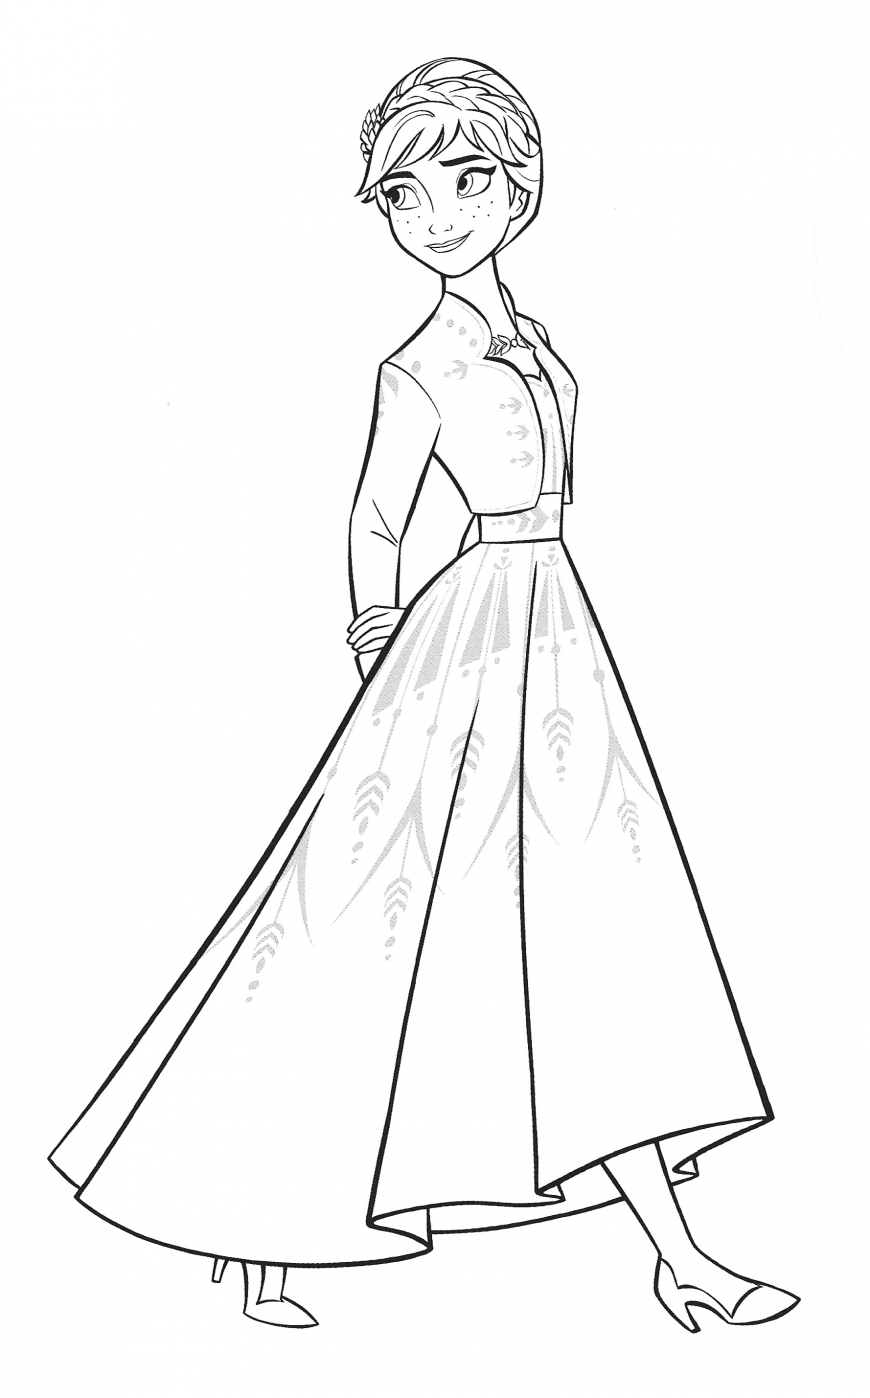 Frozen 2 Anna coloring page by variandeservesbetter on ...